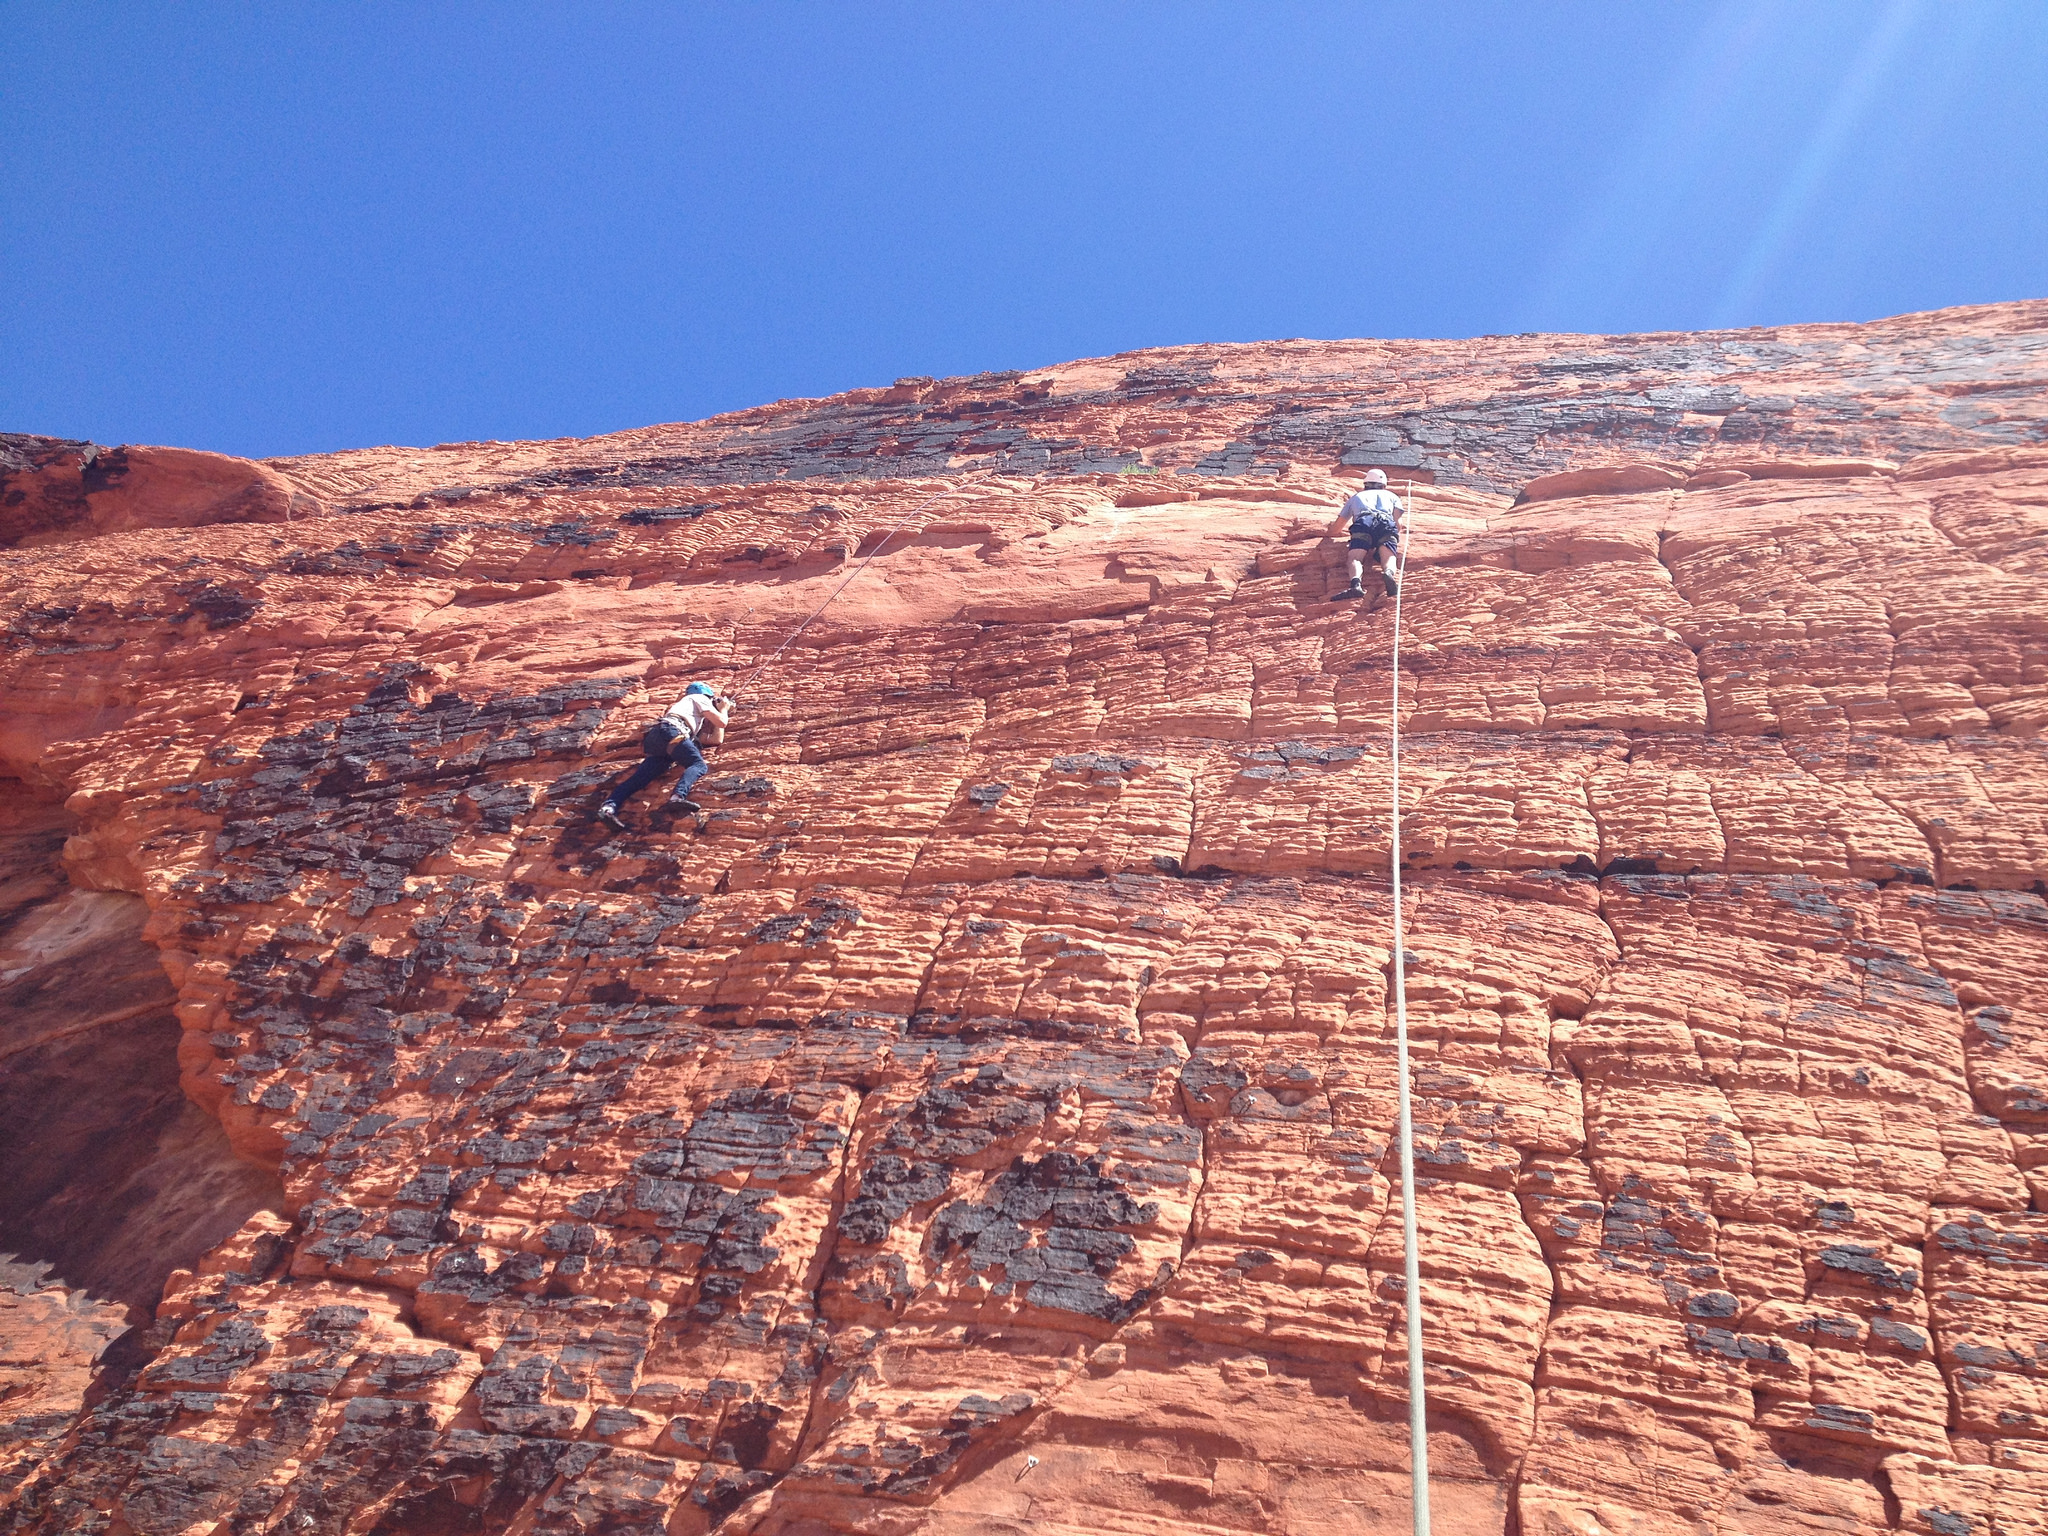 American Alpine Institute helps production company with mountain safety while filming in Red Rock, NV.